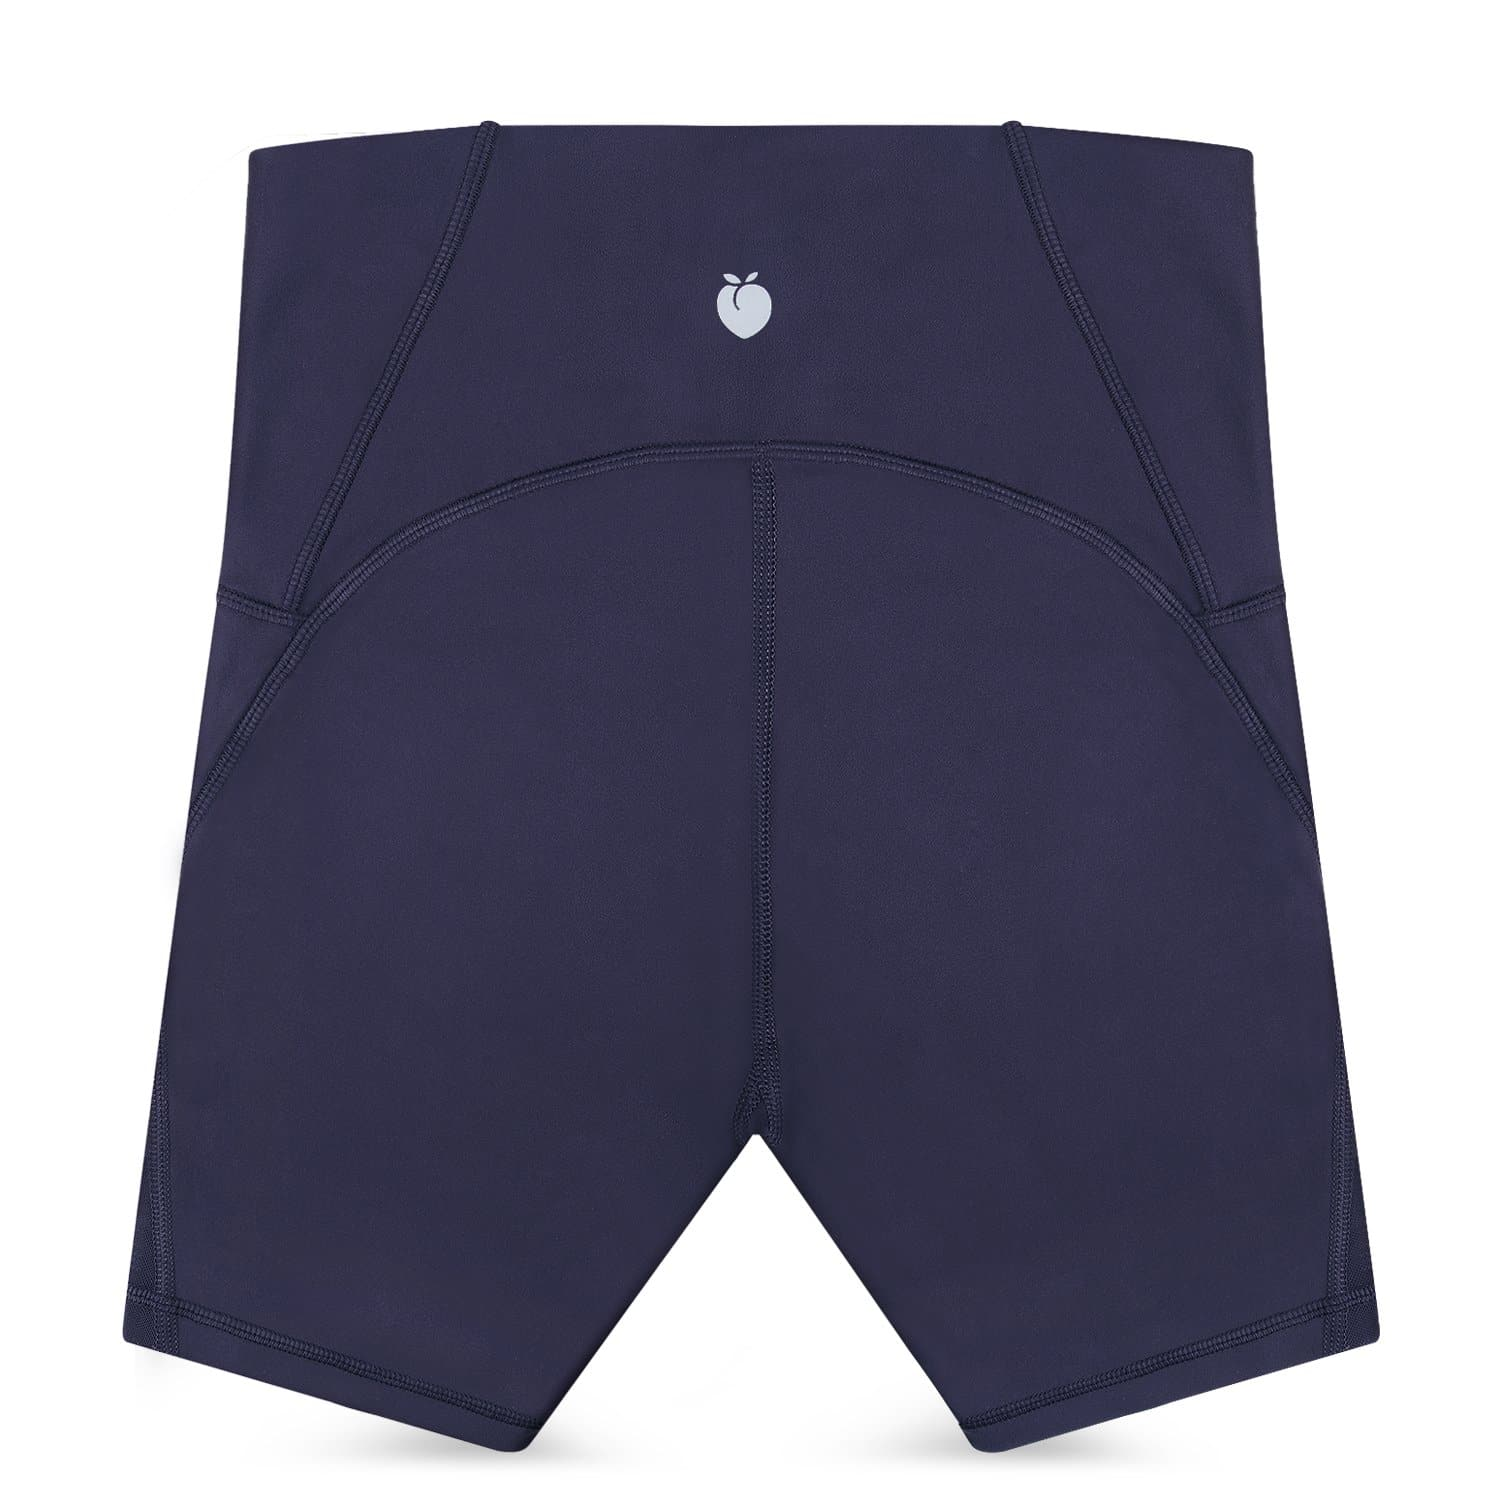 Women's Power Shorts - Midnight Blue